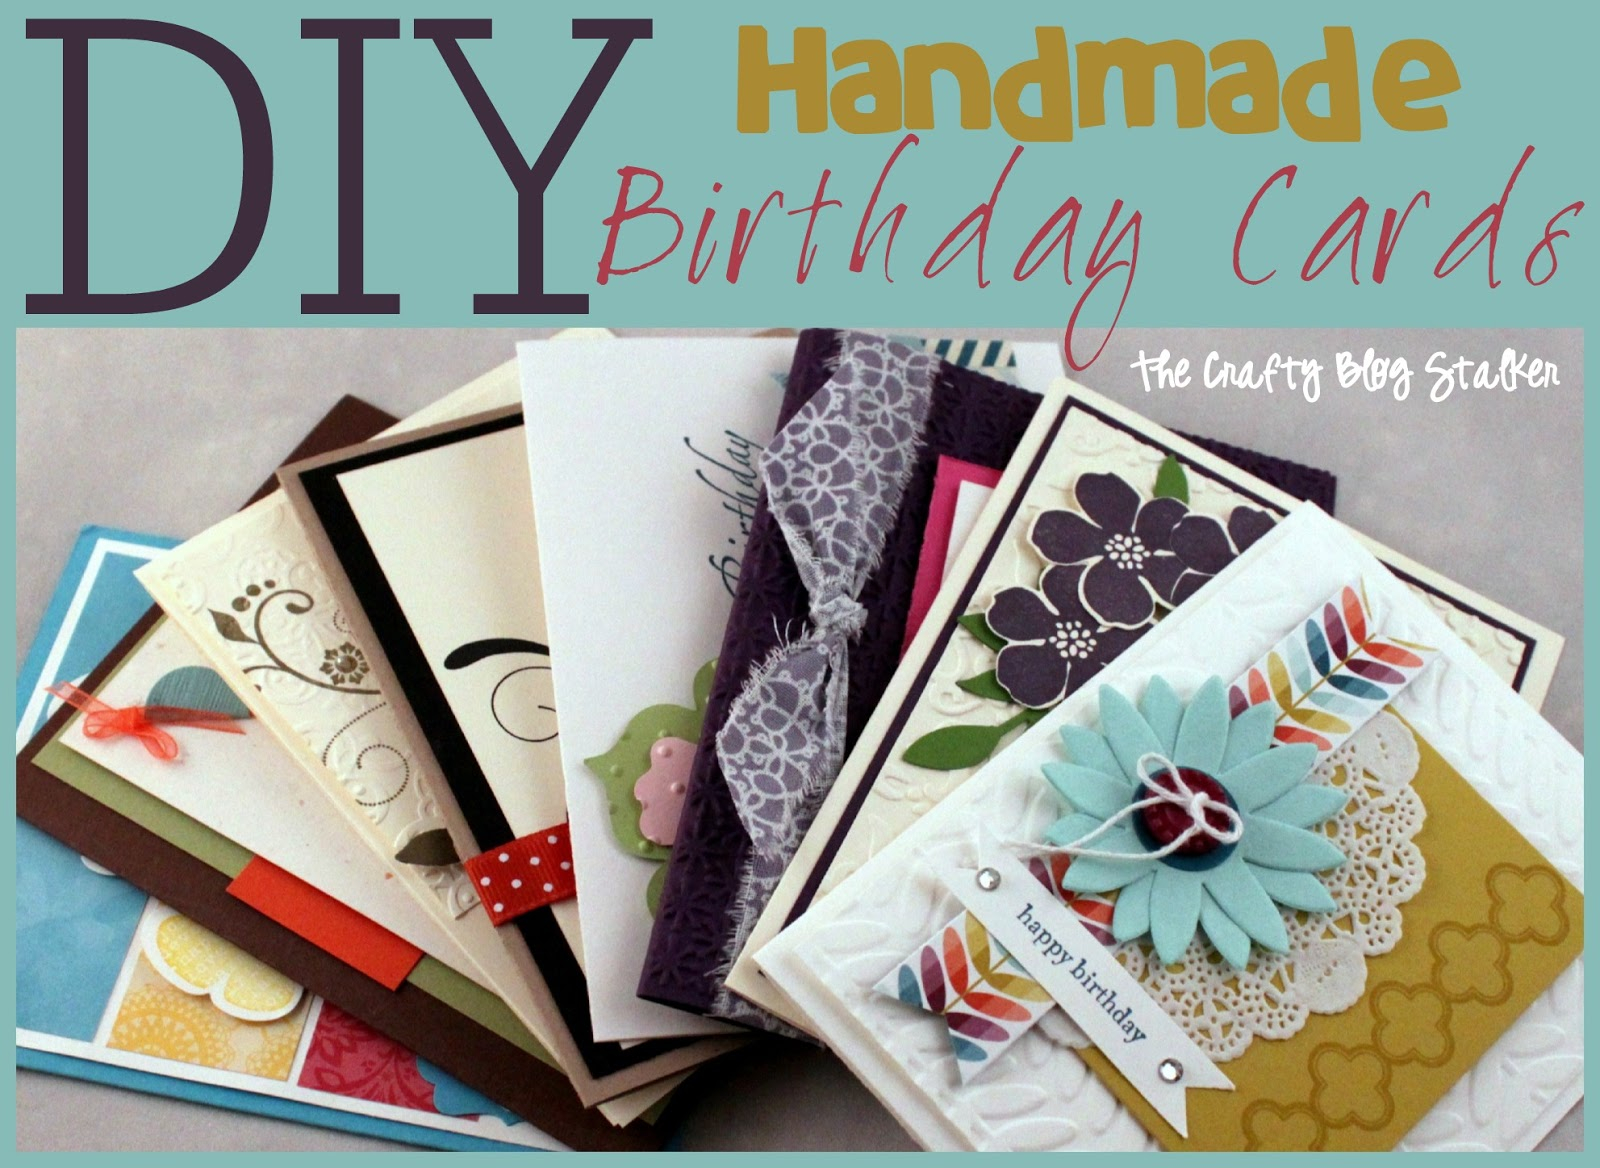 Cute Card Ideas For Birthday Handmade Birthday Card Ideas The Crafty Blog Stalker